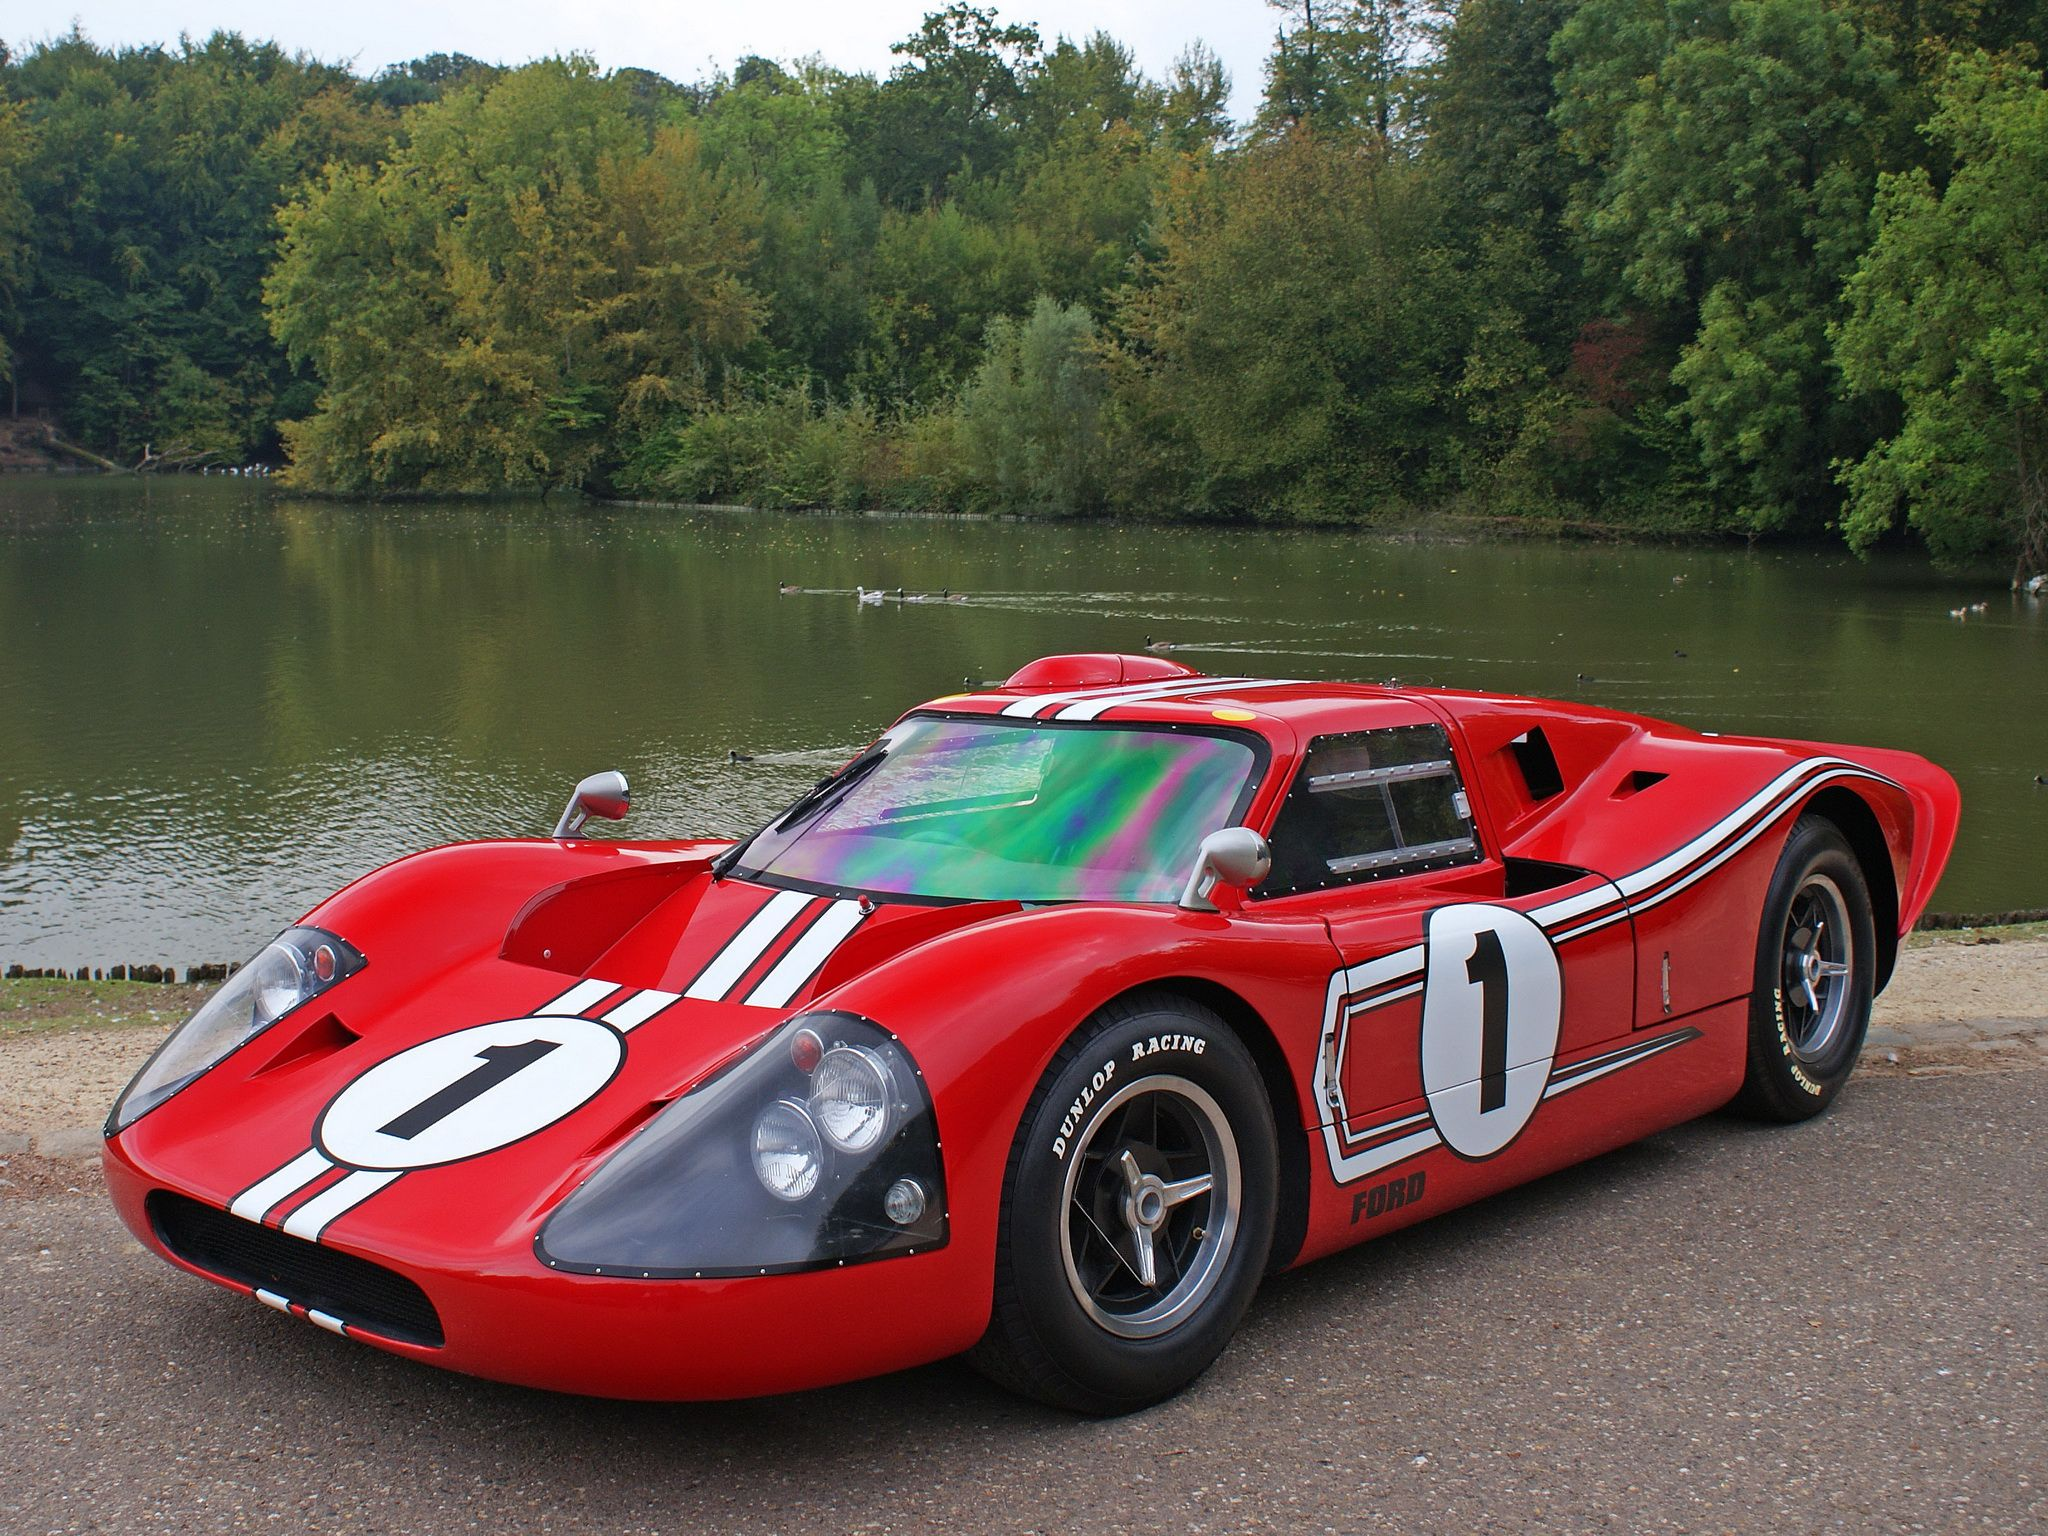 Ford Gt40 Mkiv One Of The Most Famous Cars In Racing History